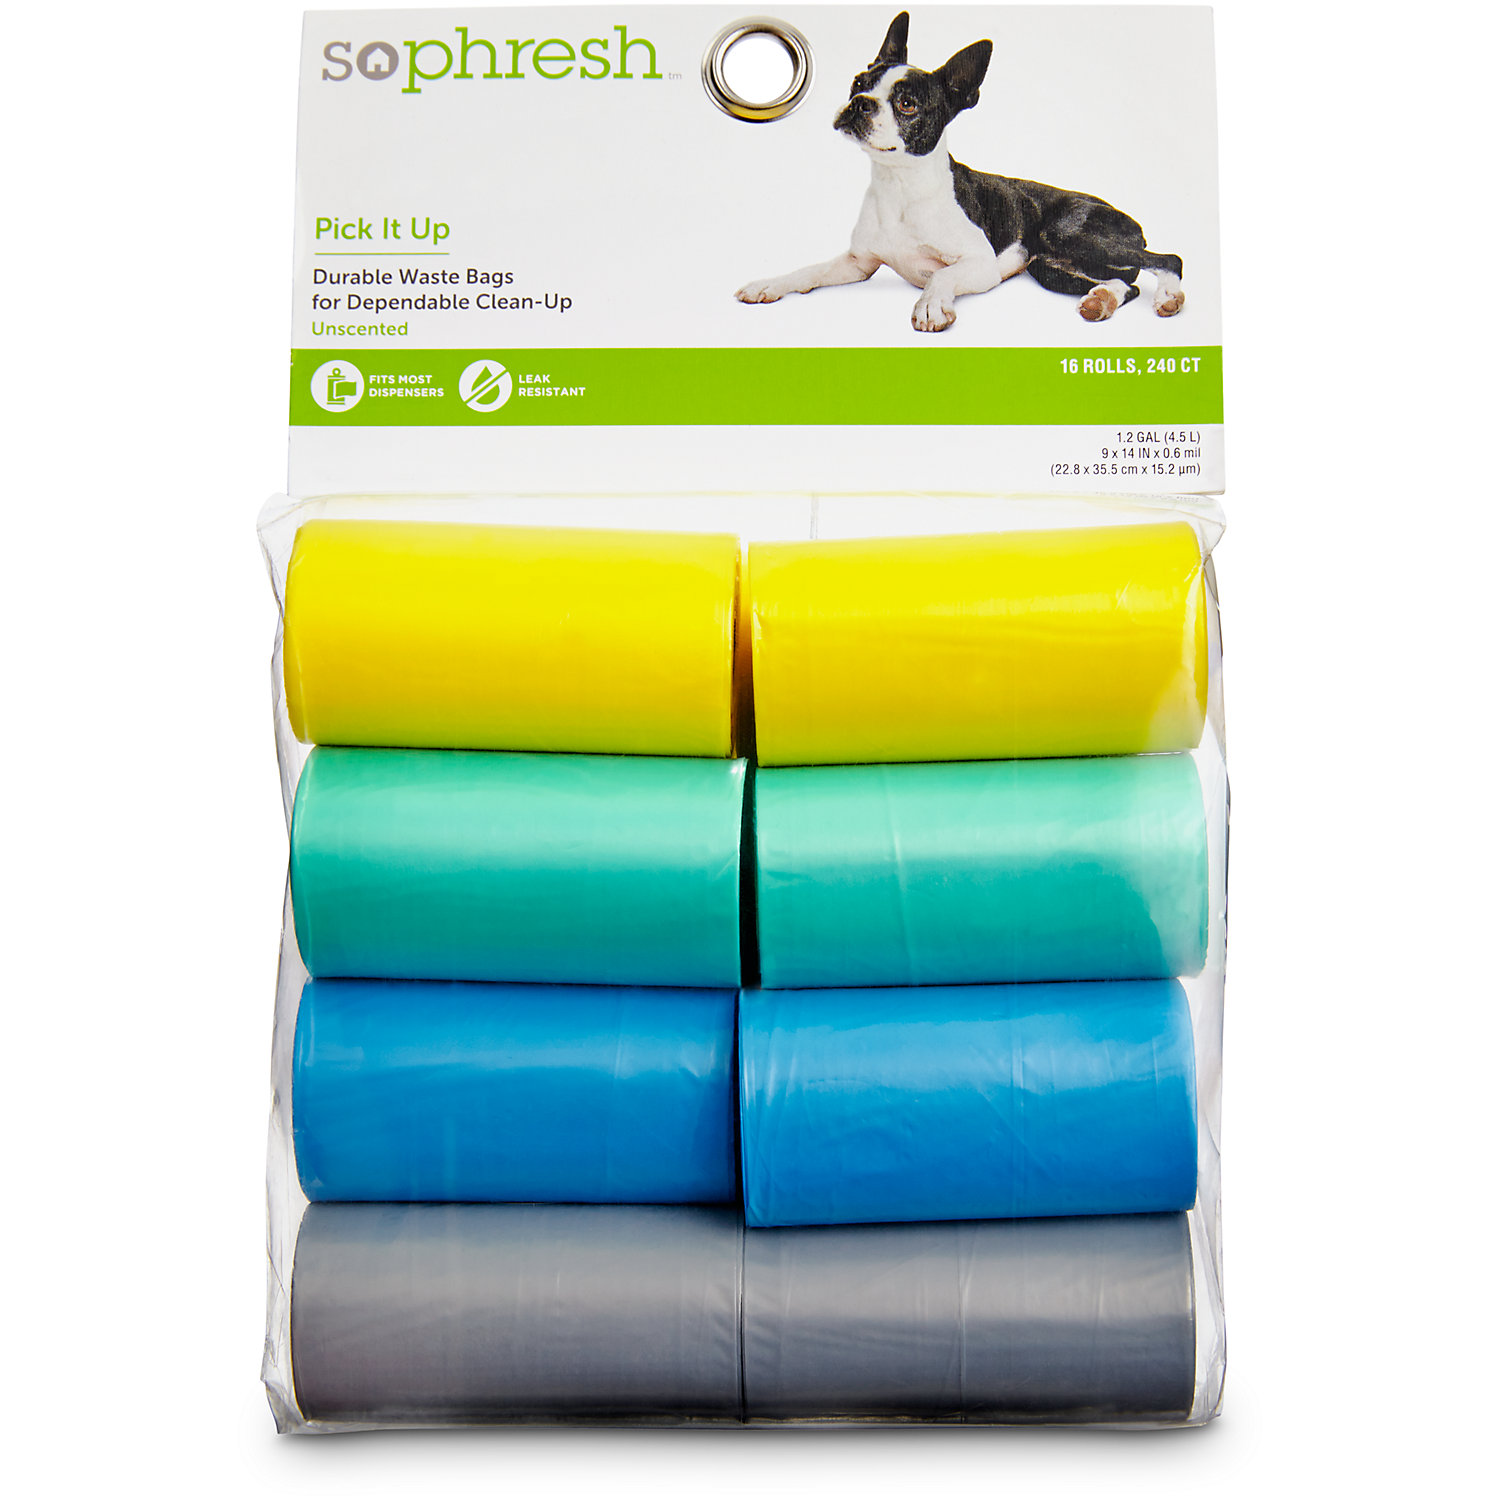 So Phresh Pick It Up Dog Waste Bags Teal/yellow 240 Count Large Teal / Yellow